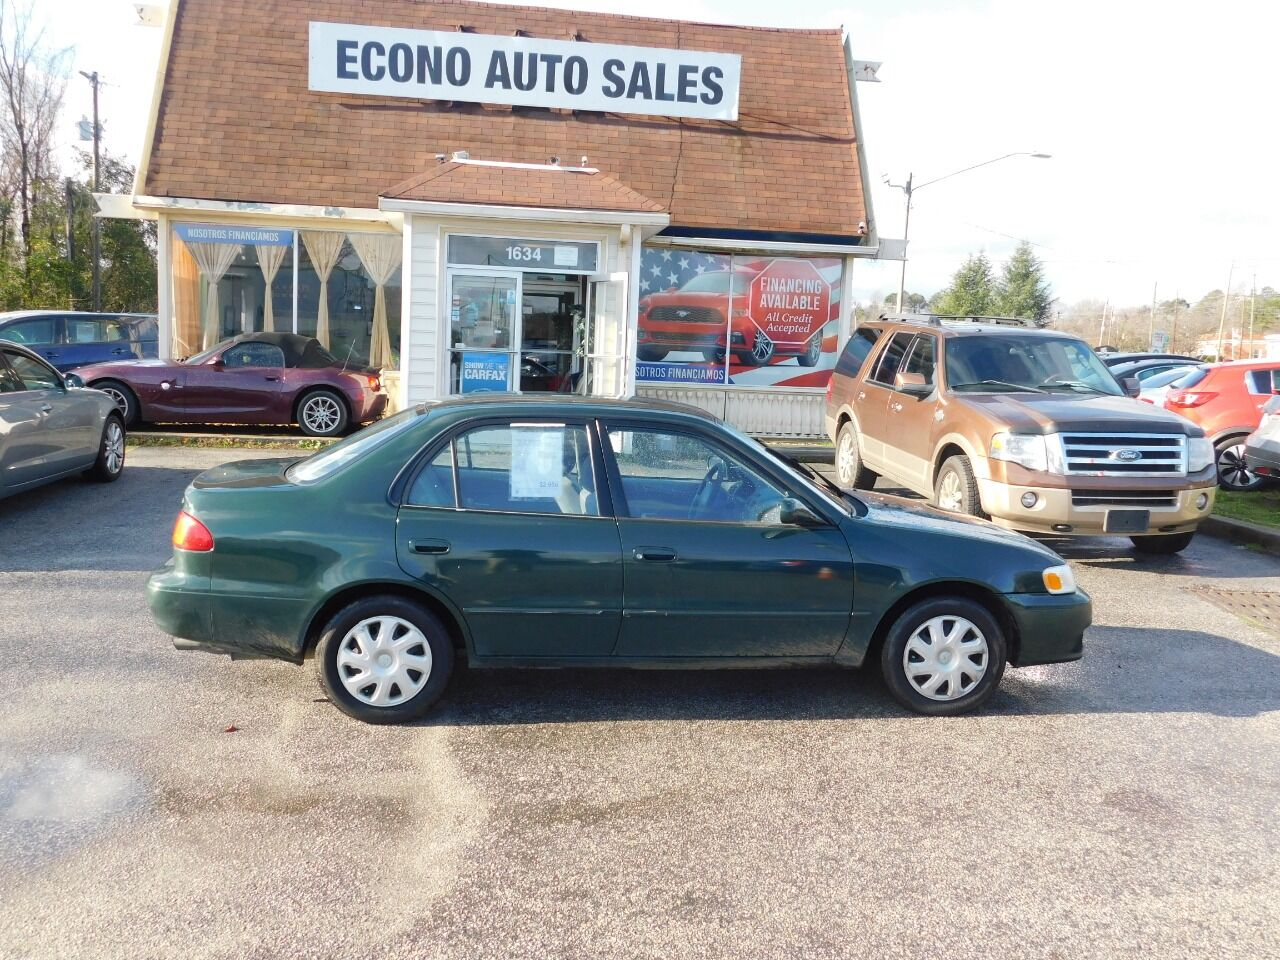 used 2002 toyota corolla for sale carsforsale com used 2002 toyota corolla for sale